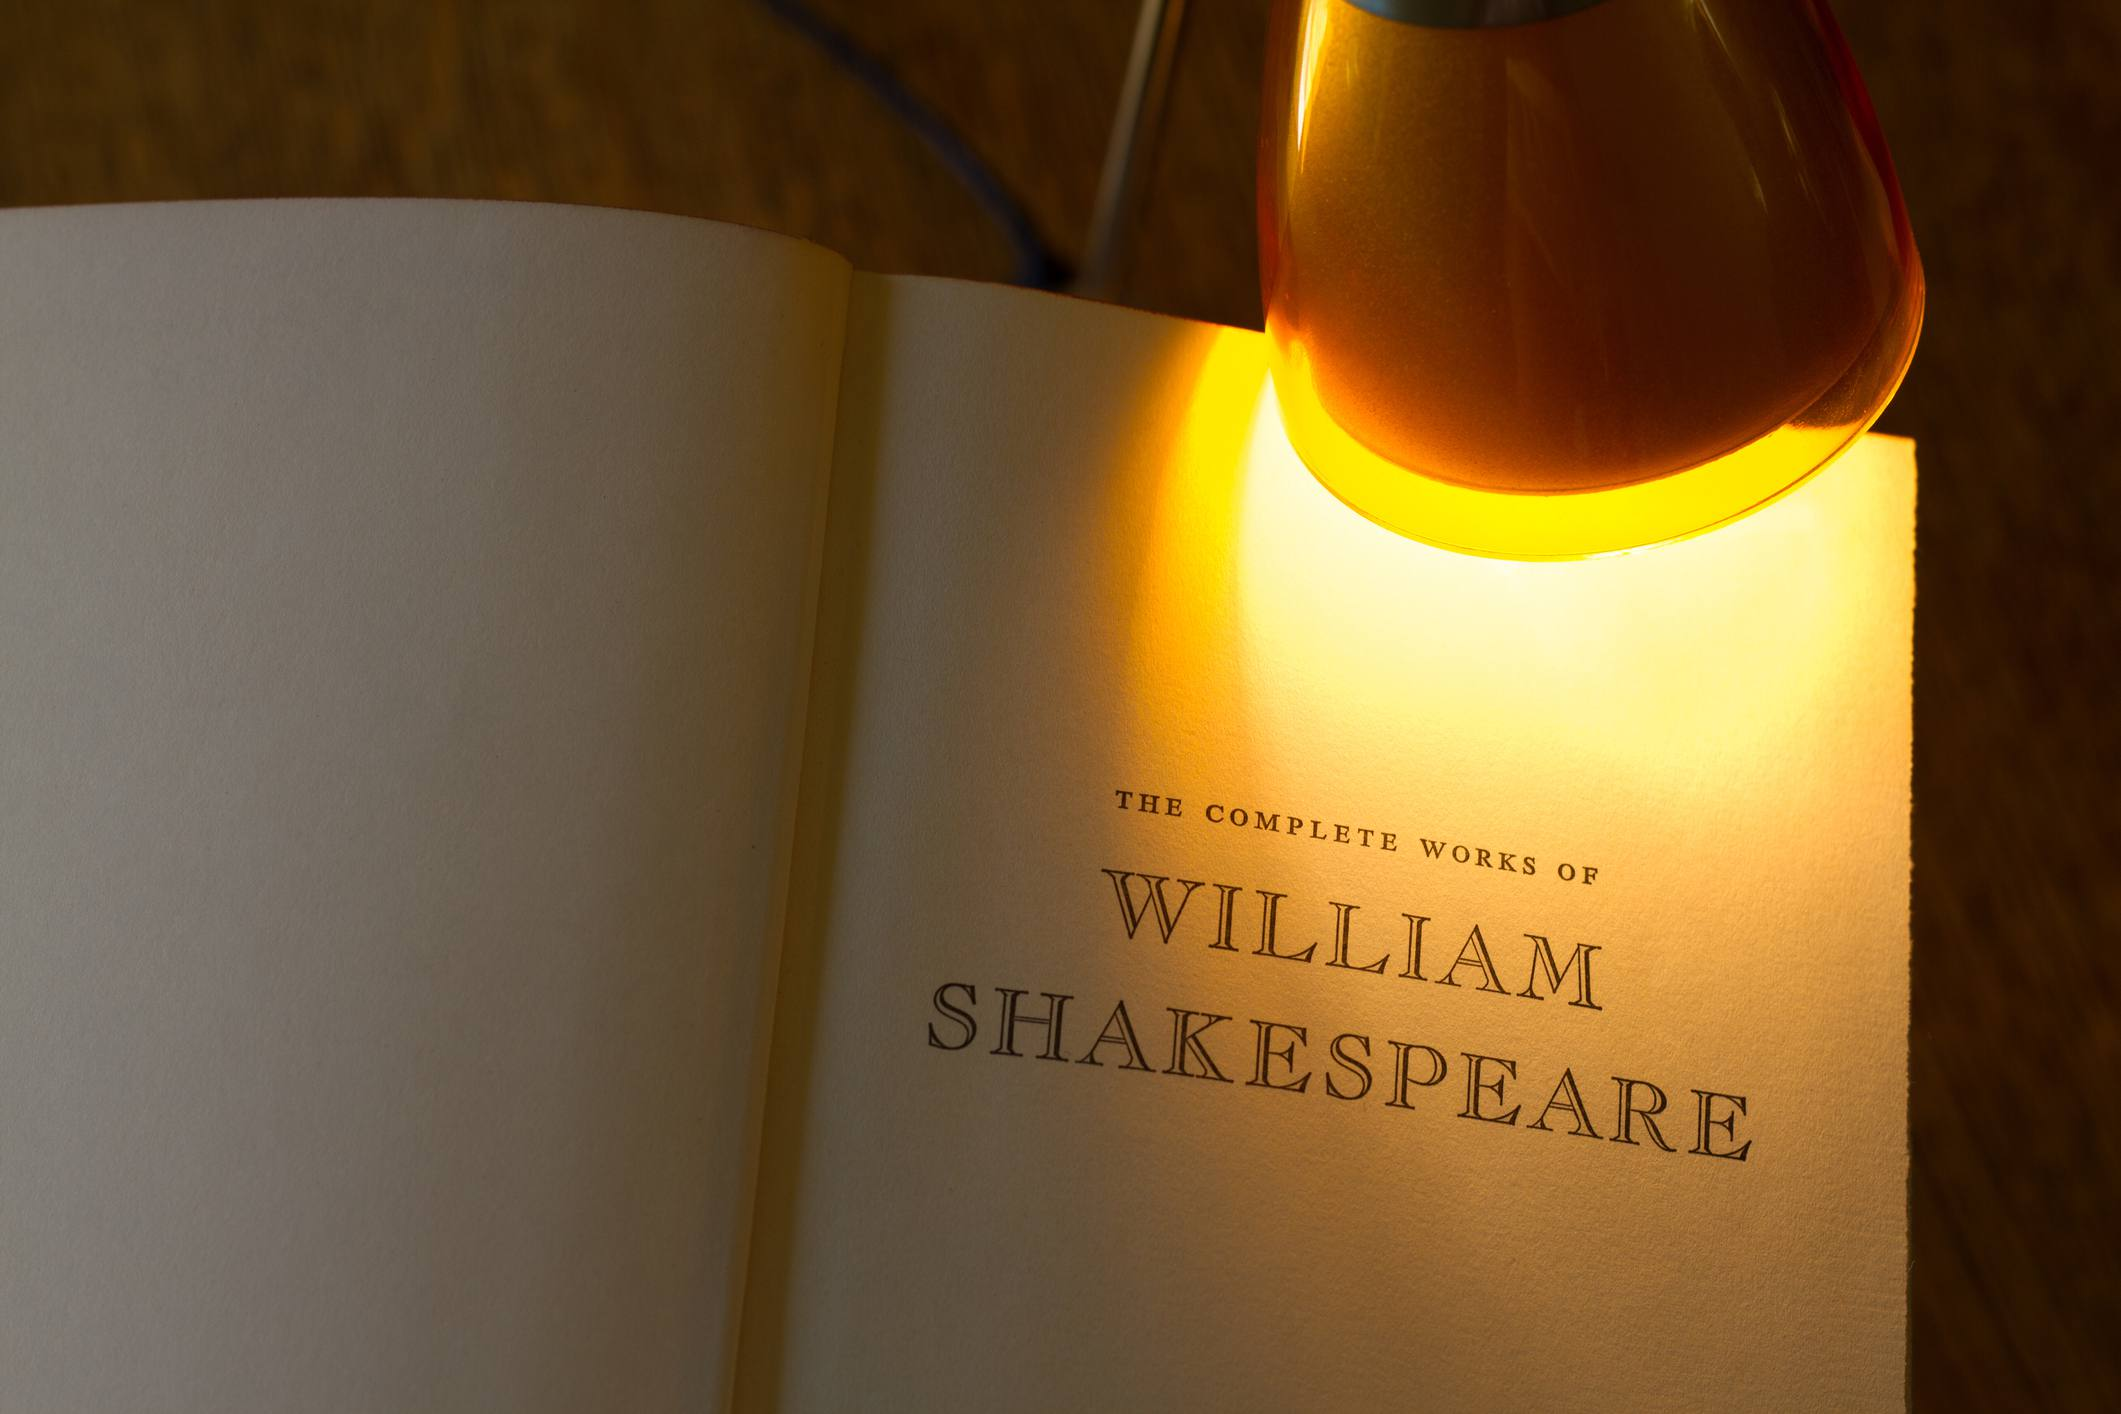 Vintage Title Page: 'The Complete Works of William Shakespeare'